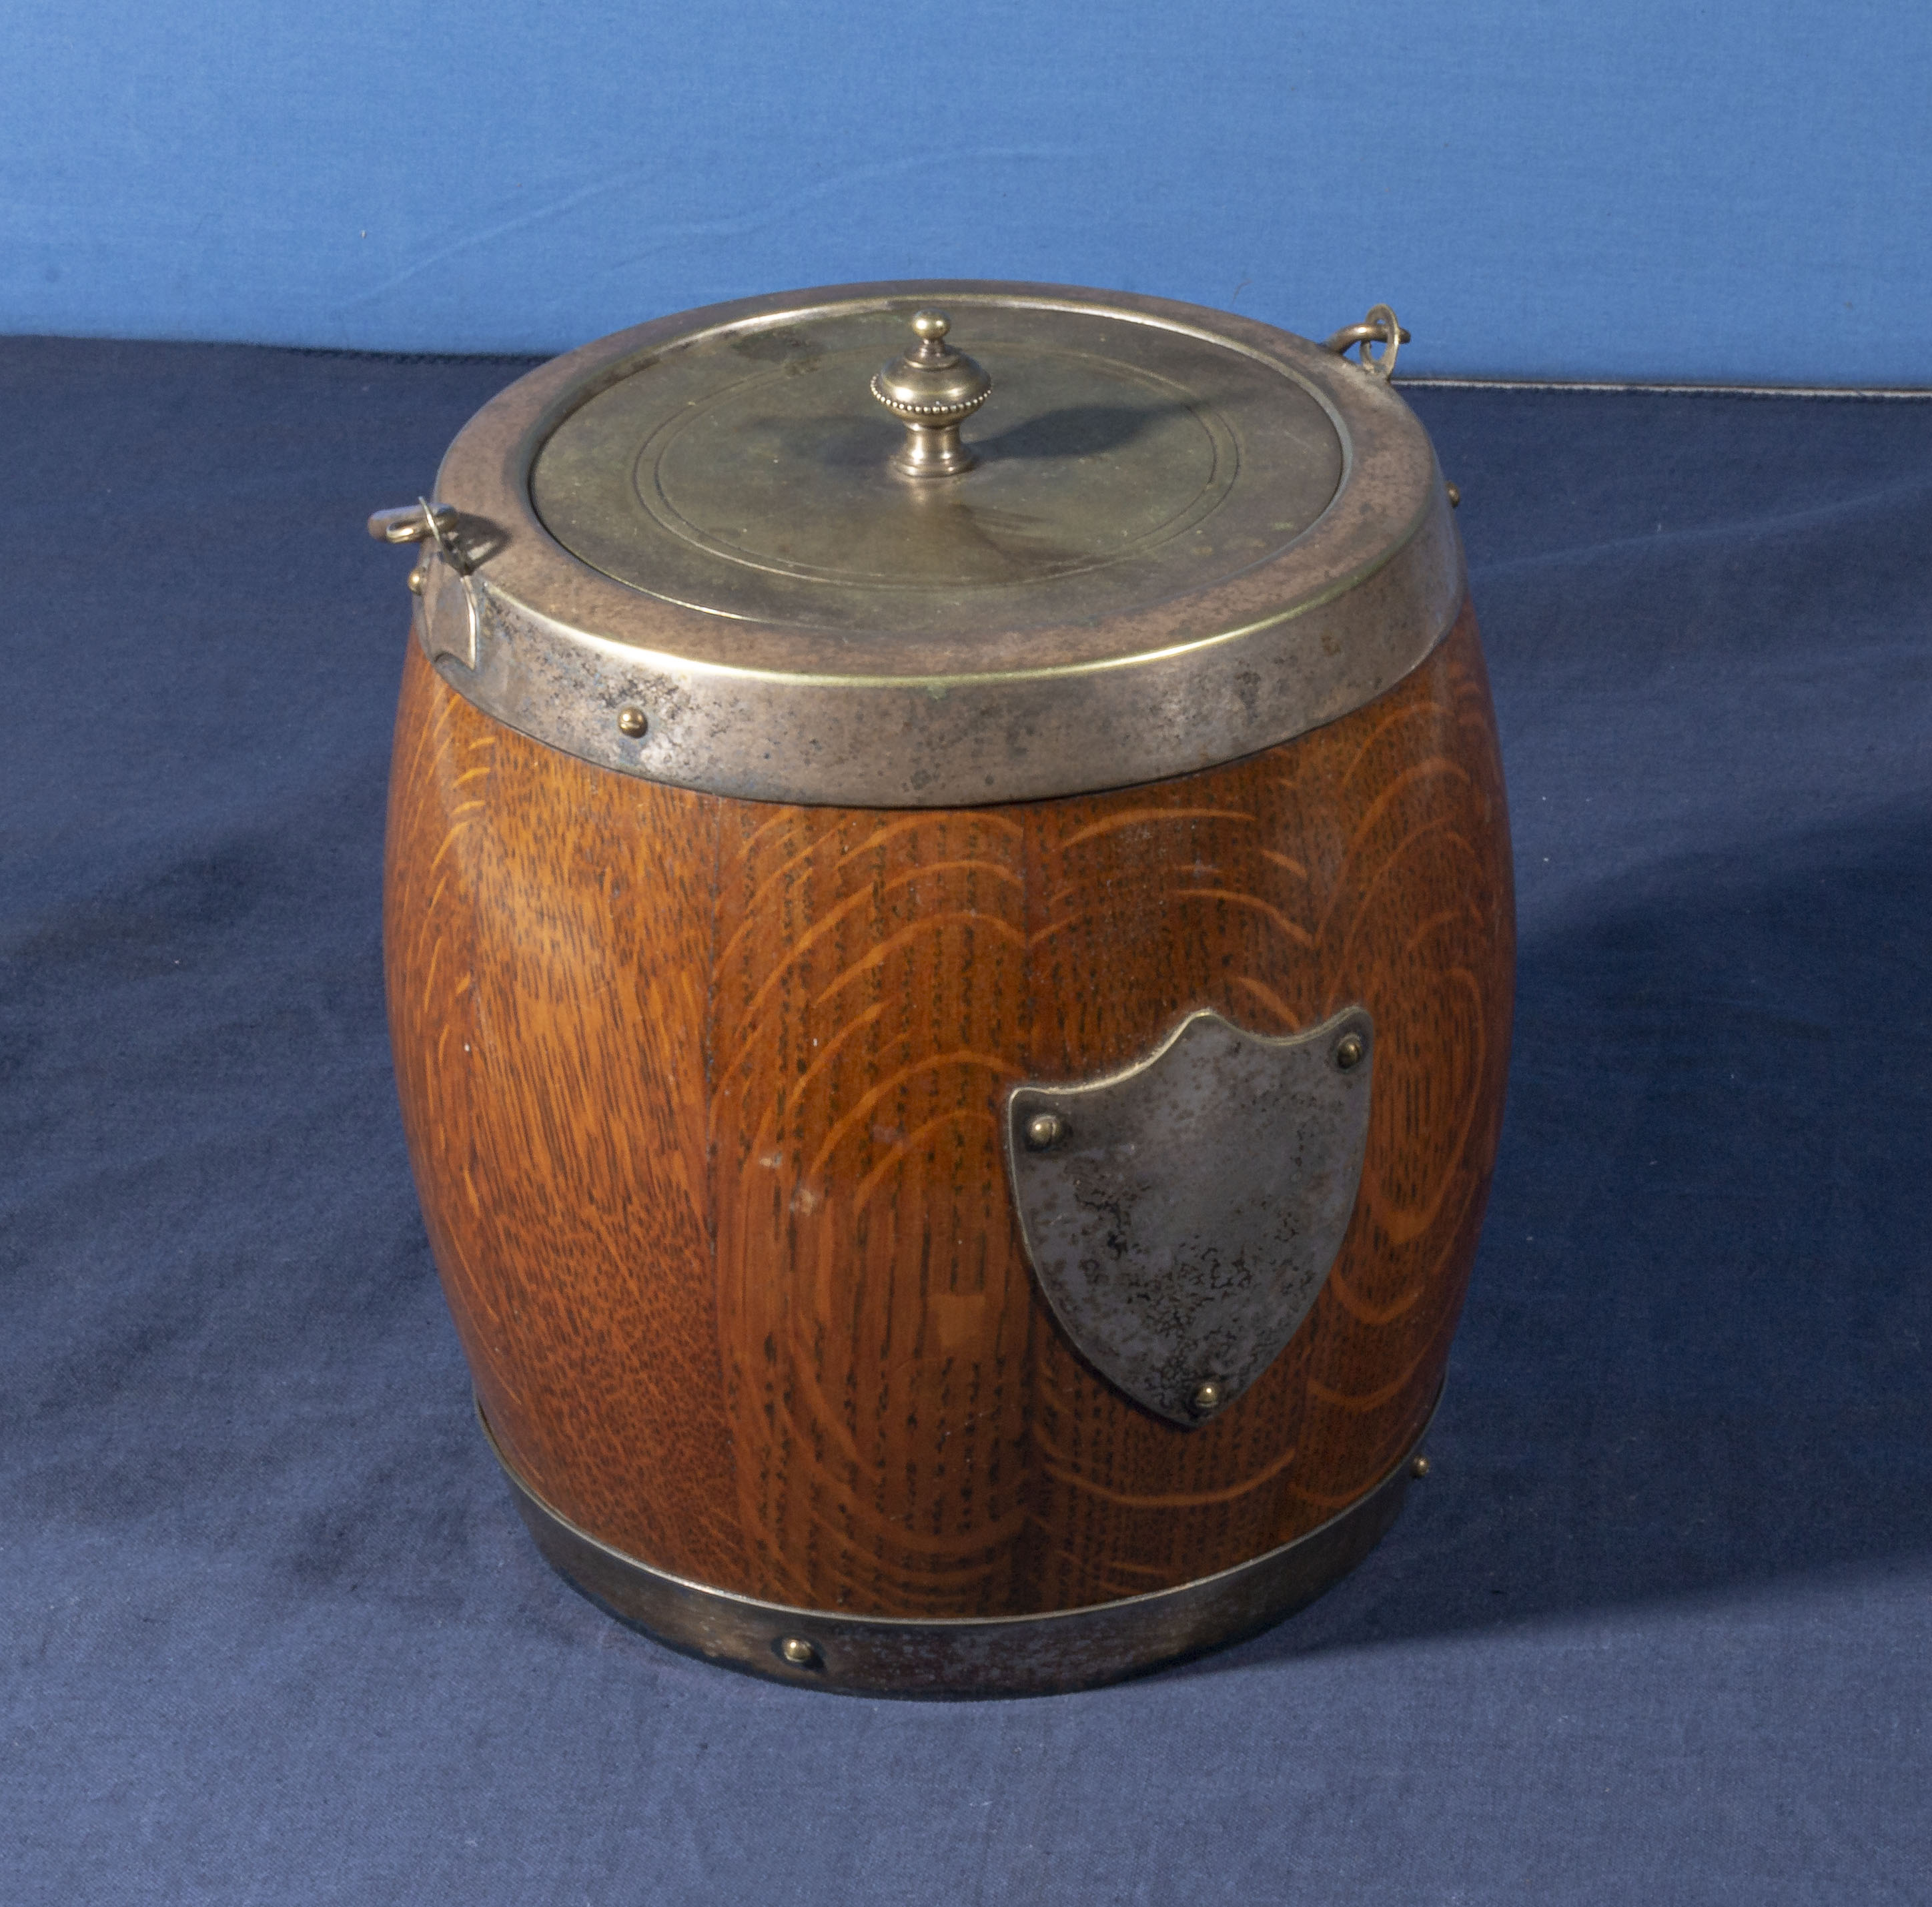 Lot 2 - A silver plated wooden biscuit barrel